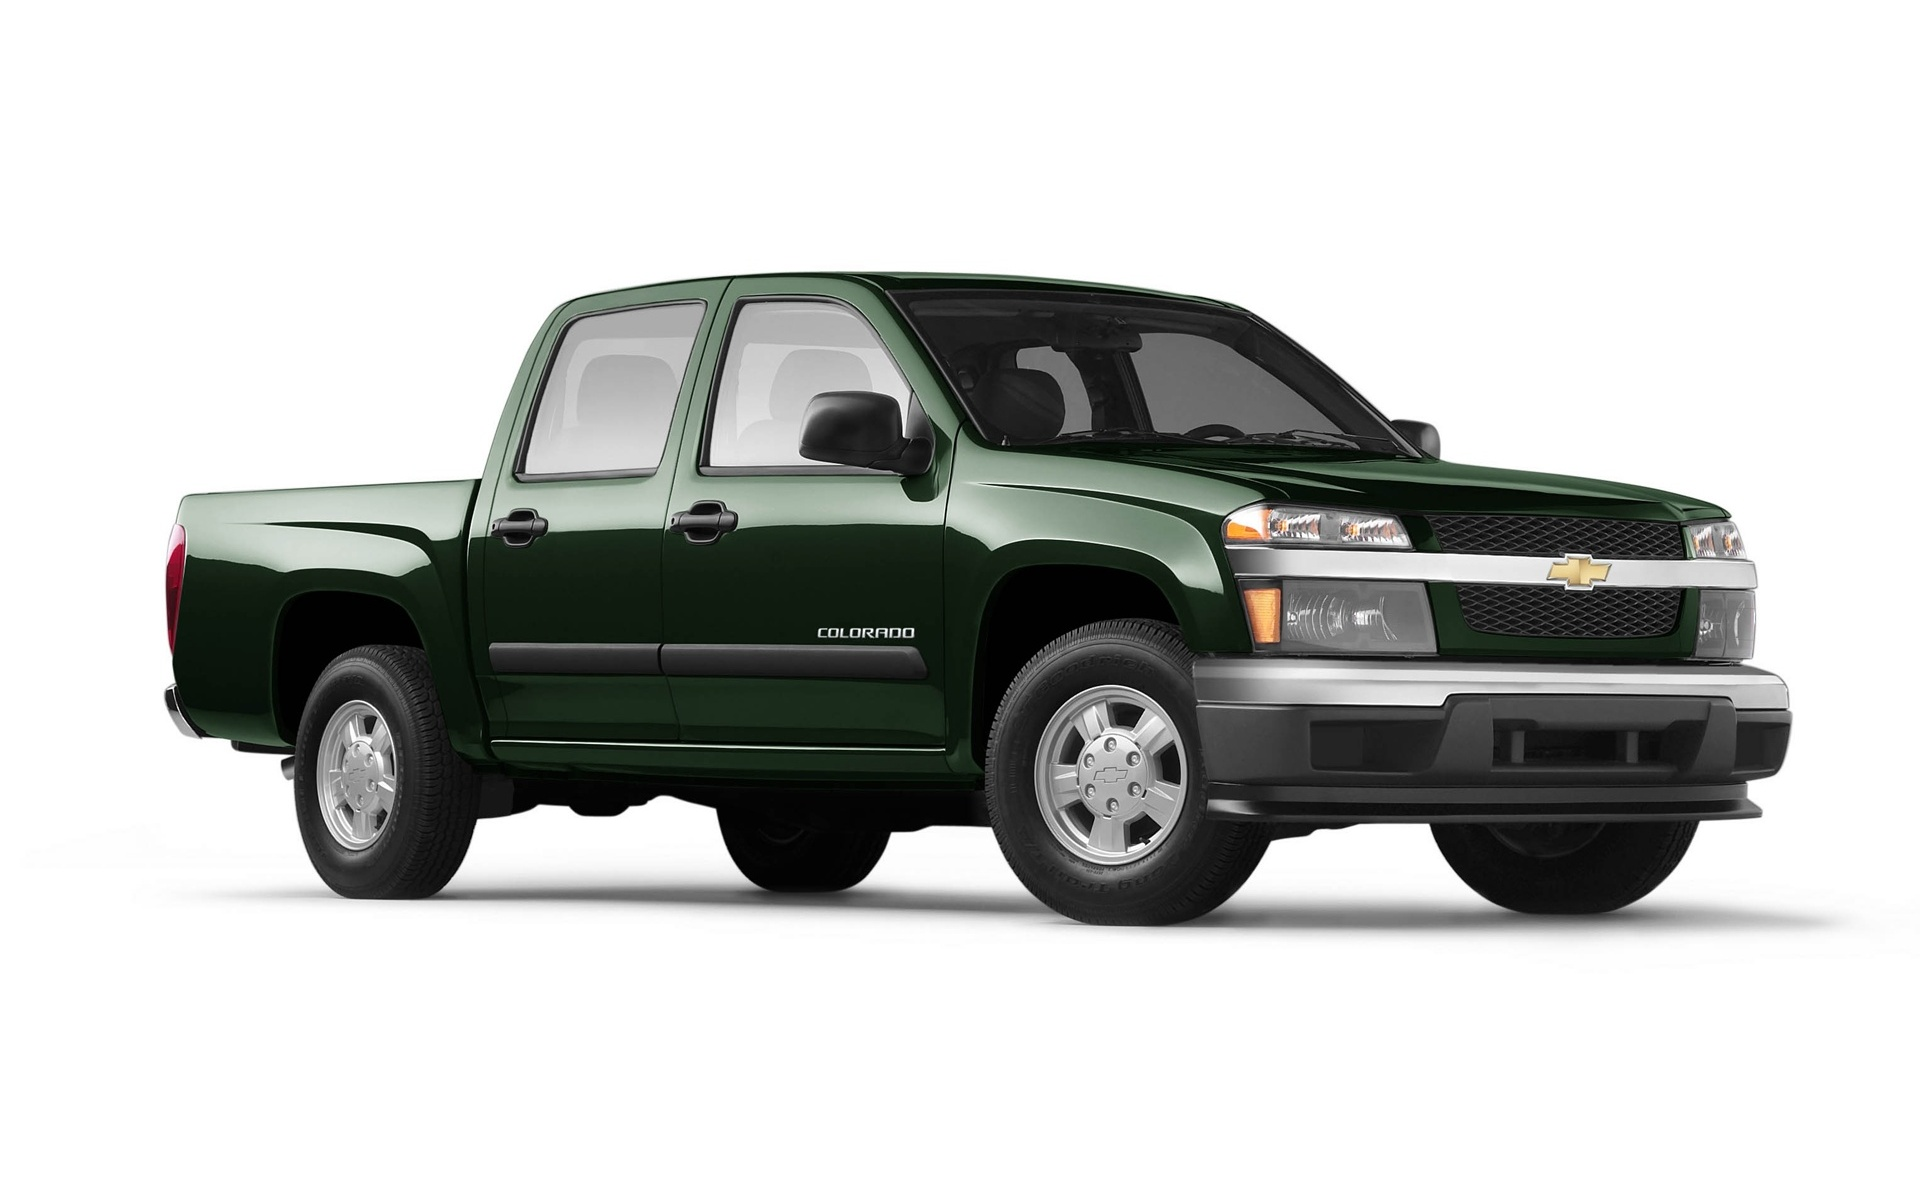 CHEVROLET COLORADO [USA] Crew Cab Pickup (US)